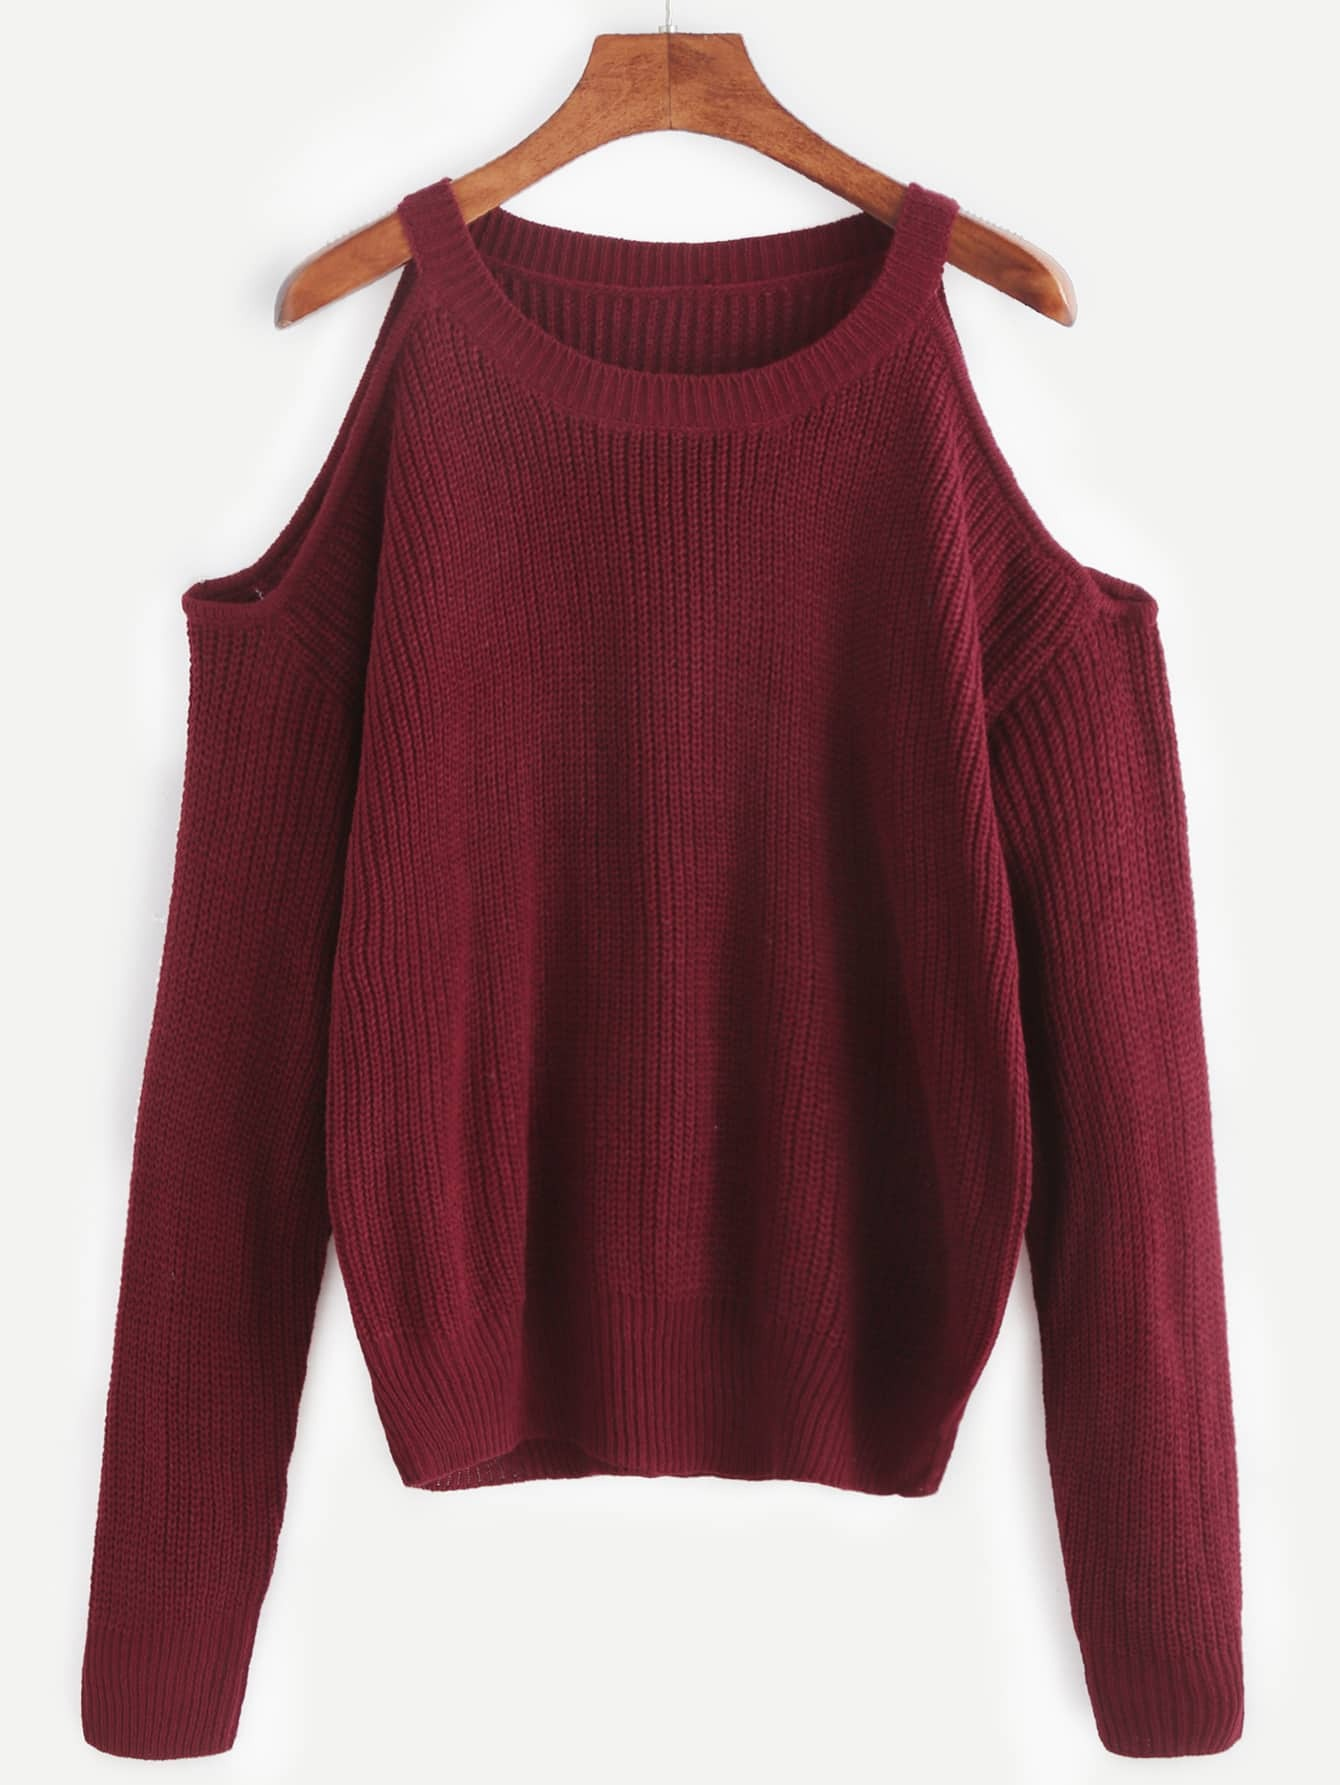 Open Shoulder Knit Sweater -SheIn(Sheinside)